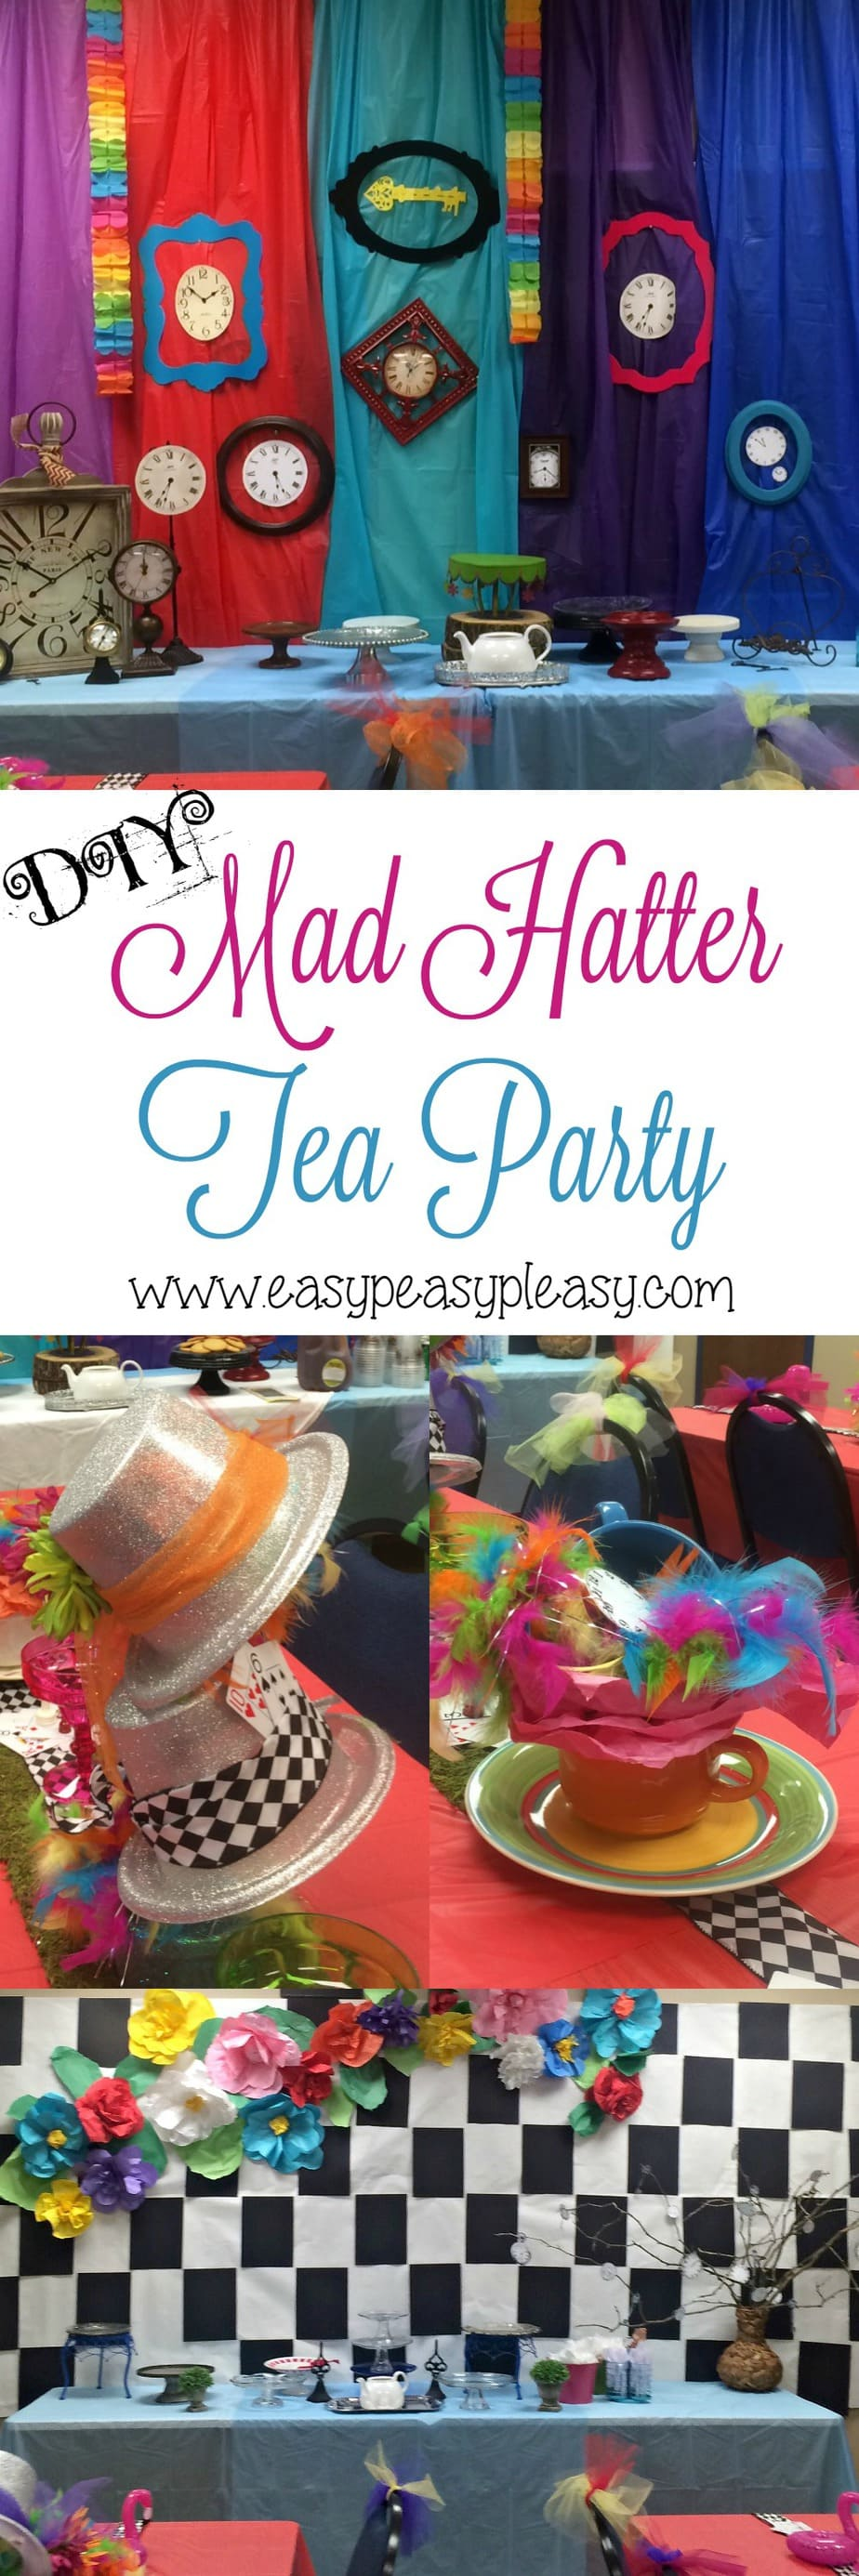 DIY Mad Hatter Tea Party!